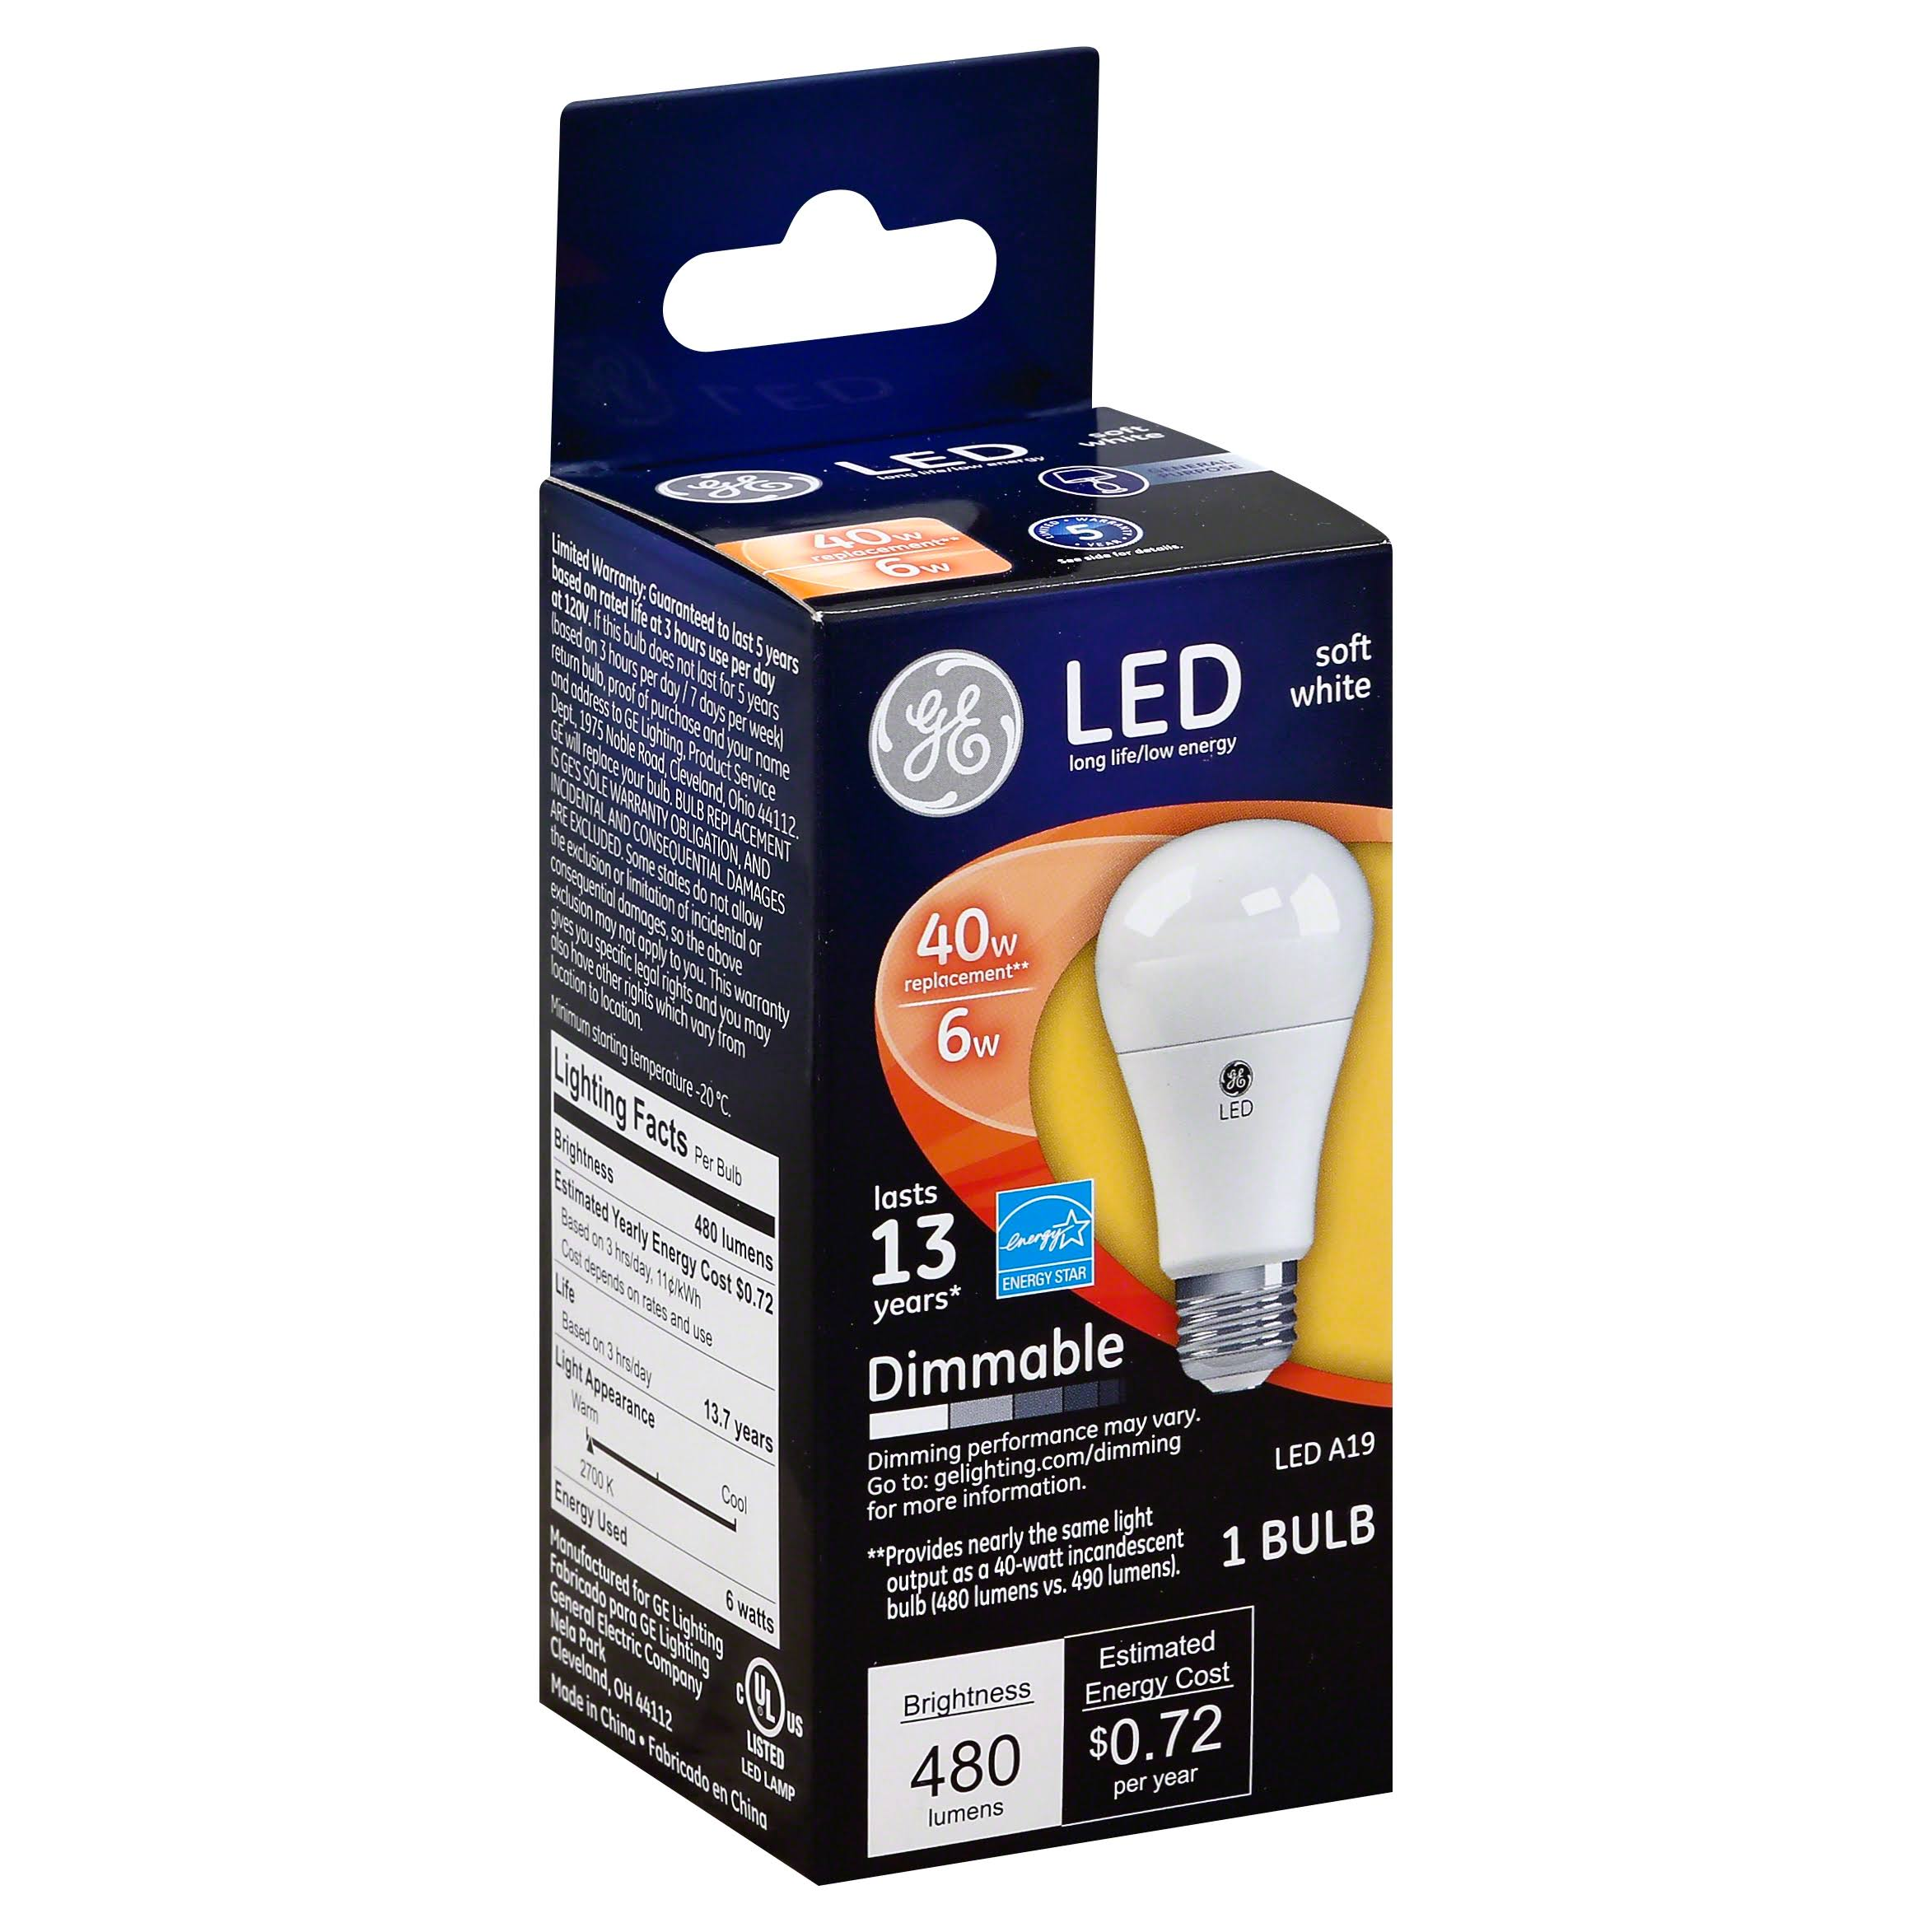 GE Dimmable LED Light Bulb - 6W / 40W, Soft White